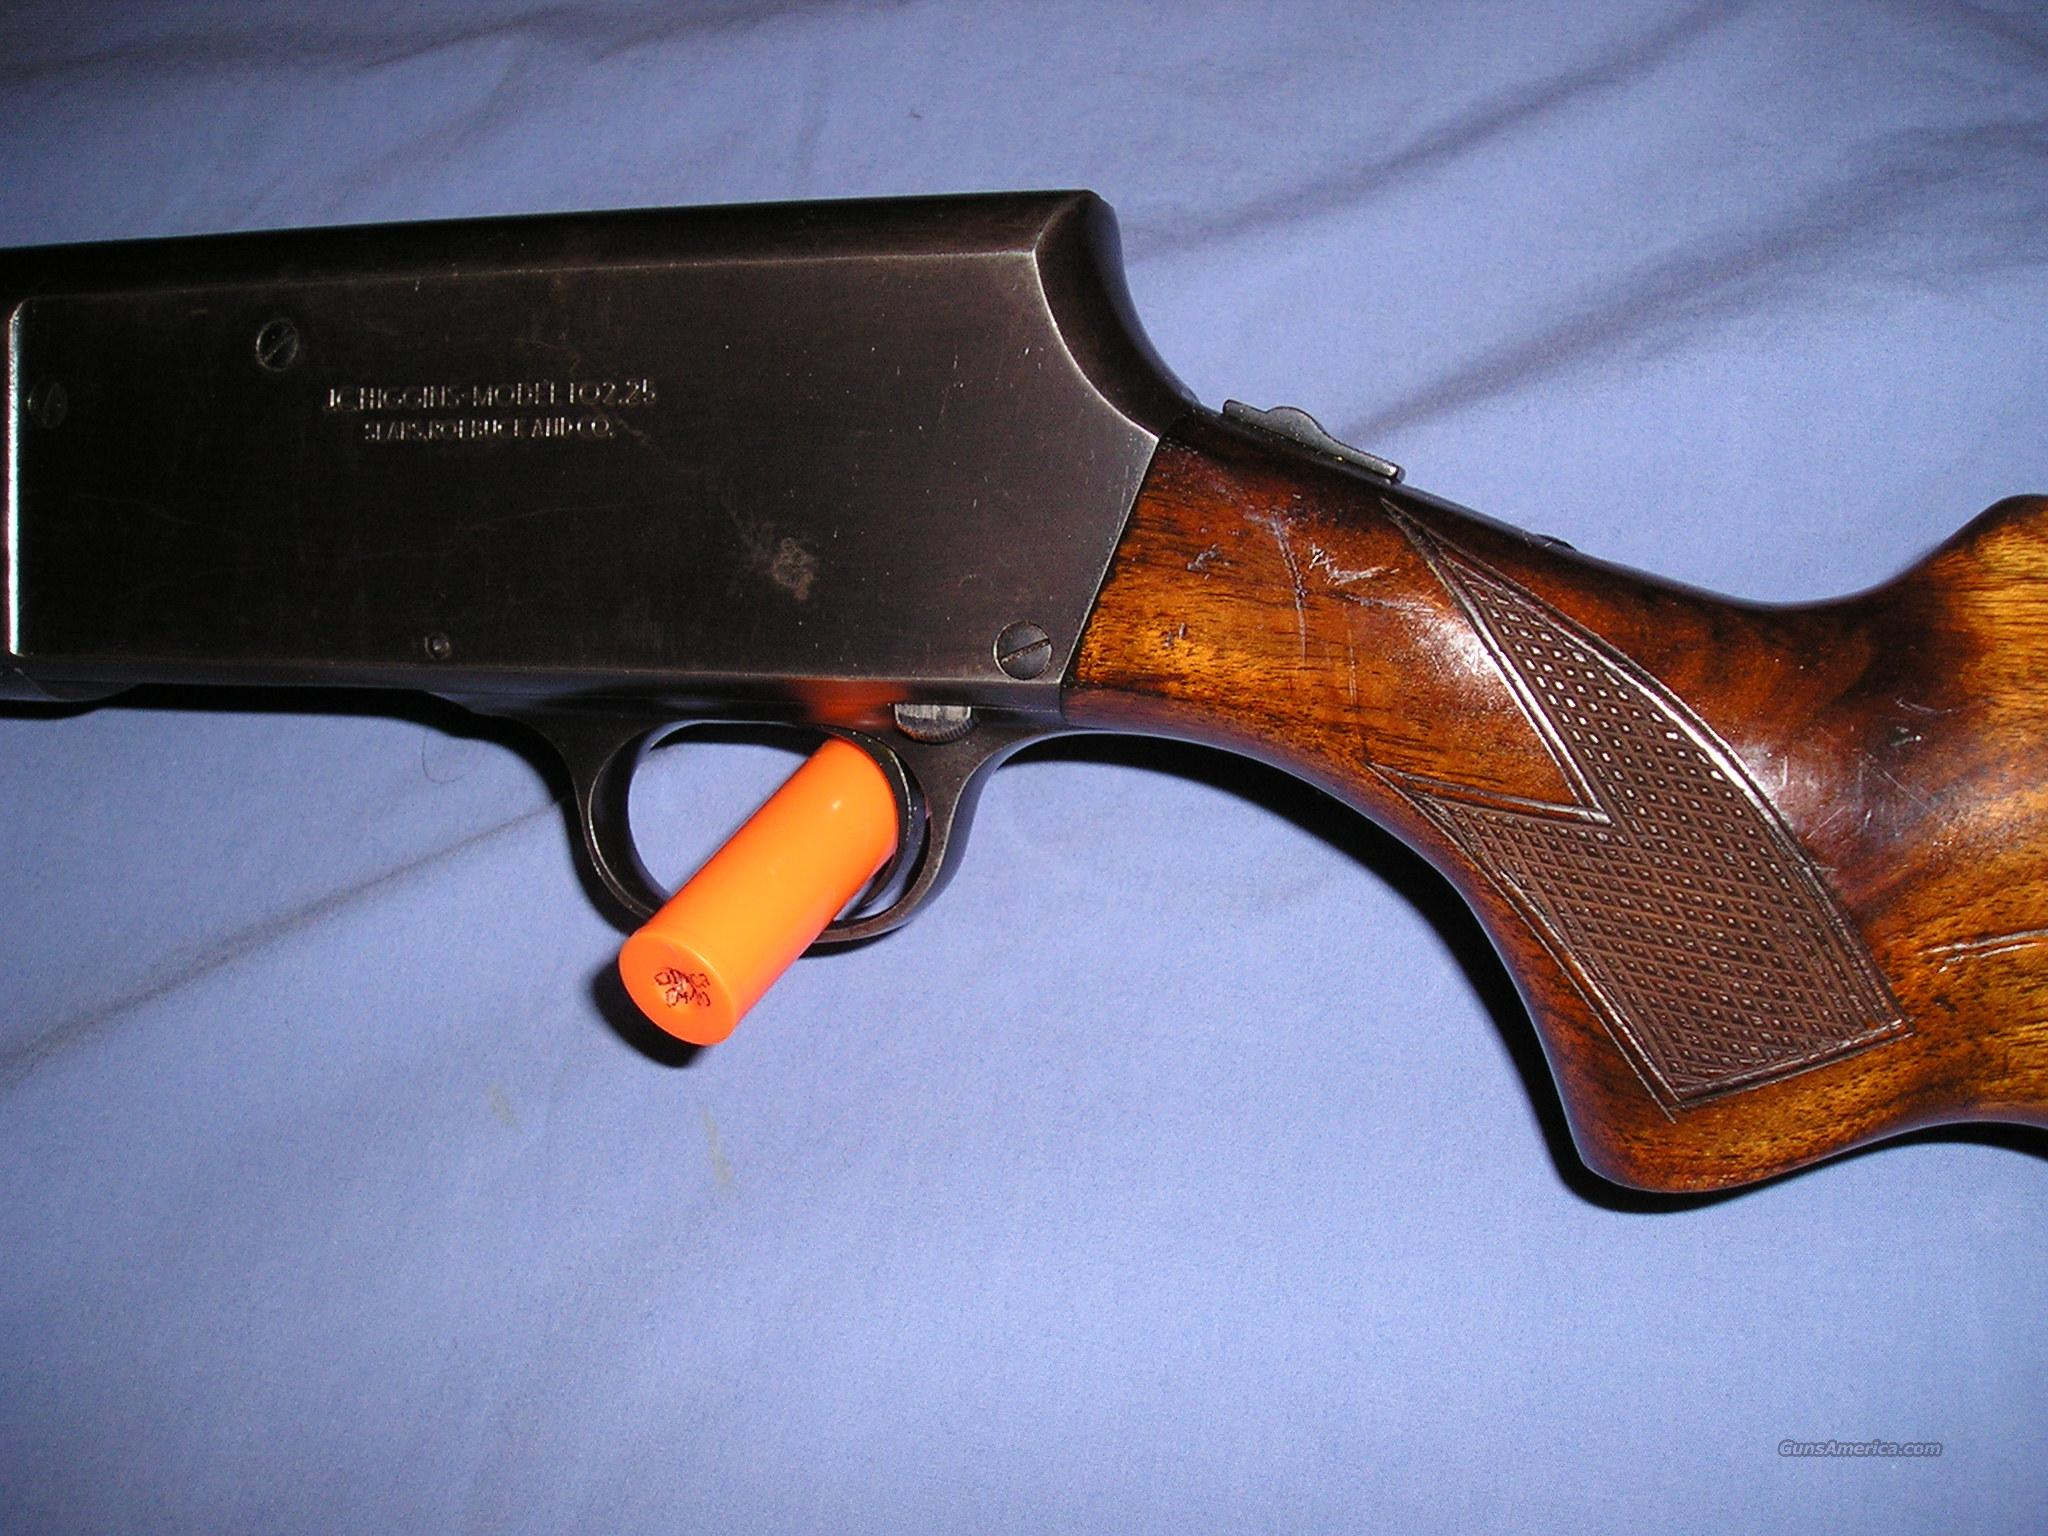 JC HIGGINS MODEL 102.25 - 12 GAUGE  Guns > Shotguns > JC Higgins Shotguns